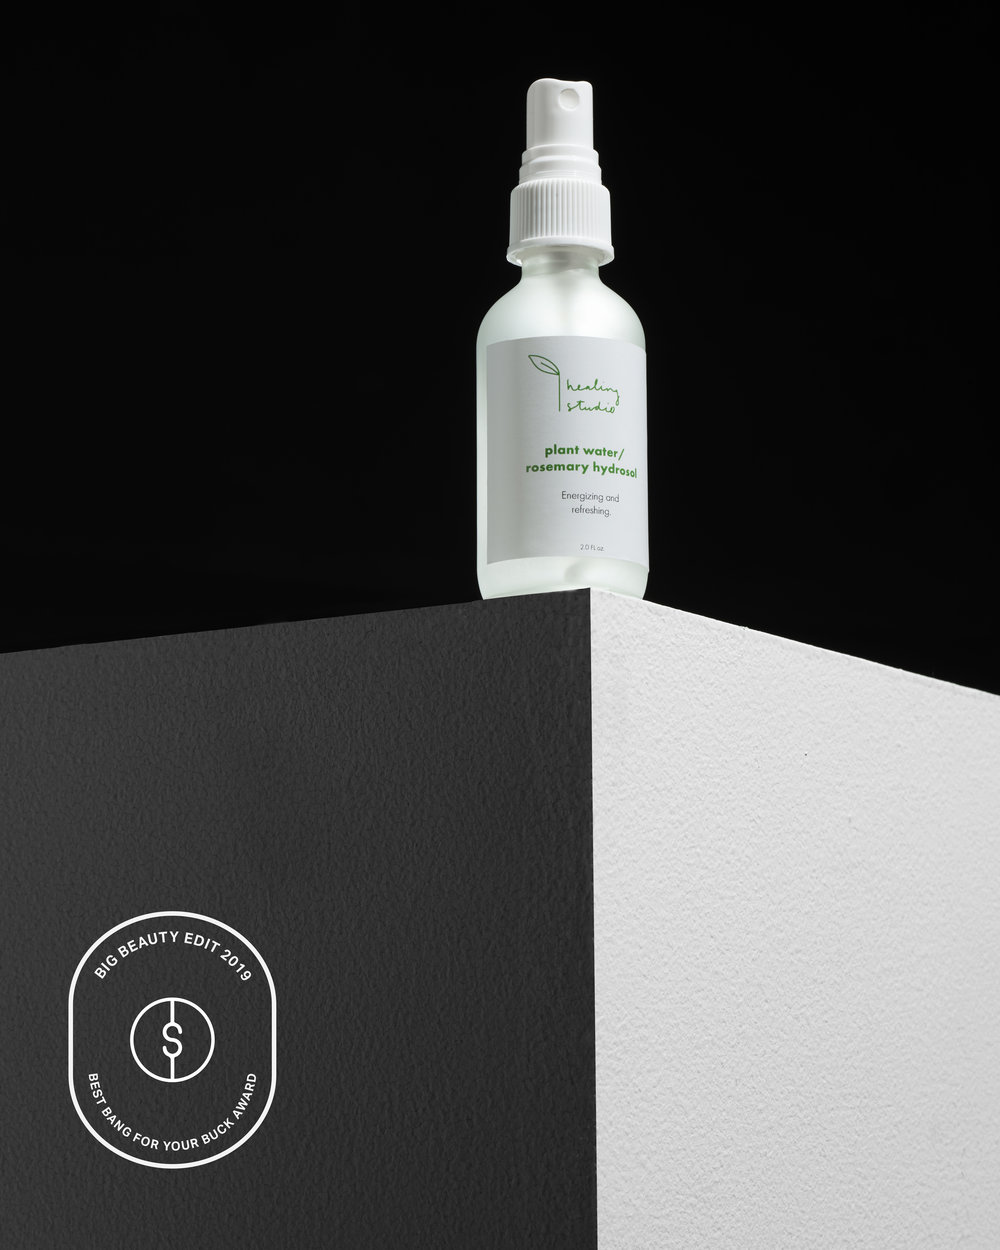 Healing StudioRosemary Hydrosol Spray - In 2019, consumers demanded they know where their products were made, sourced, and how clean they were in comparison to products of yesteryear, so when April Banker of Healing Studio started her little witches cove—she created a small yet mighty line of botanical essentials. The steam distilled hydrosol water is made from organic rosemary leaves and flowers. Handpicked, harvested, and sourced from Jellicles Farm in Sunol, CA which Healing Studio has a close relationship with. We use this spray as a toner day and/or night or to refresh make-up throughout the day. Spray on.// Healing Studio, Rosemary Hydrosol Spray, $24